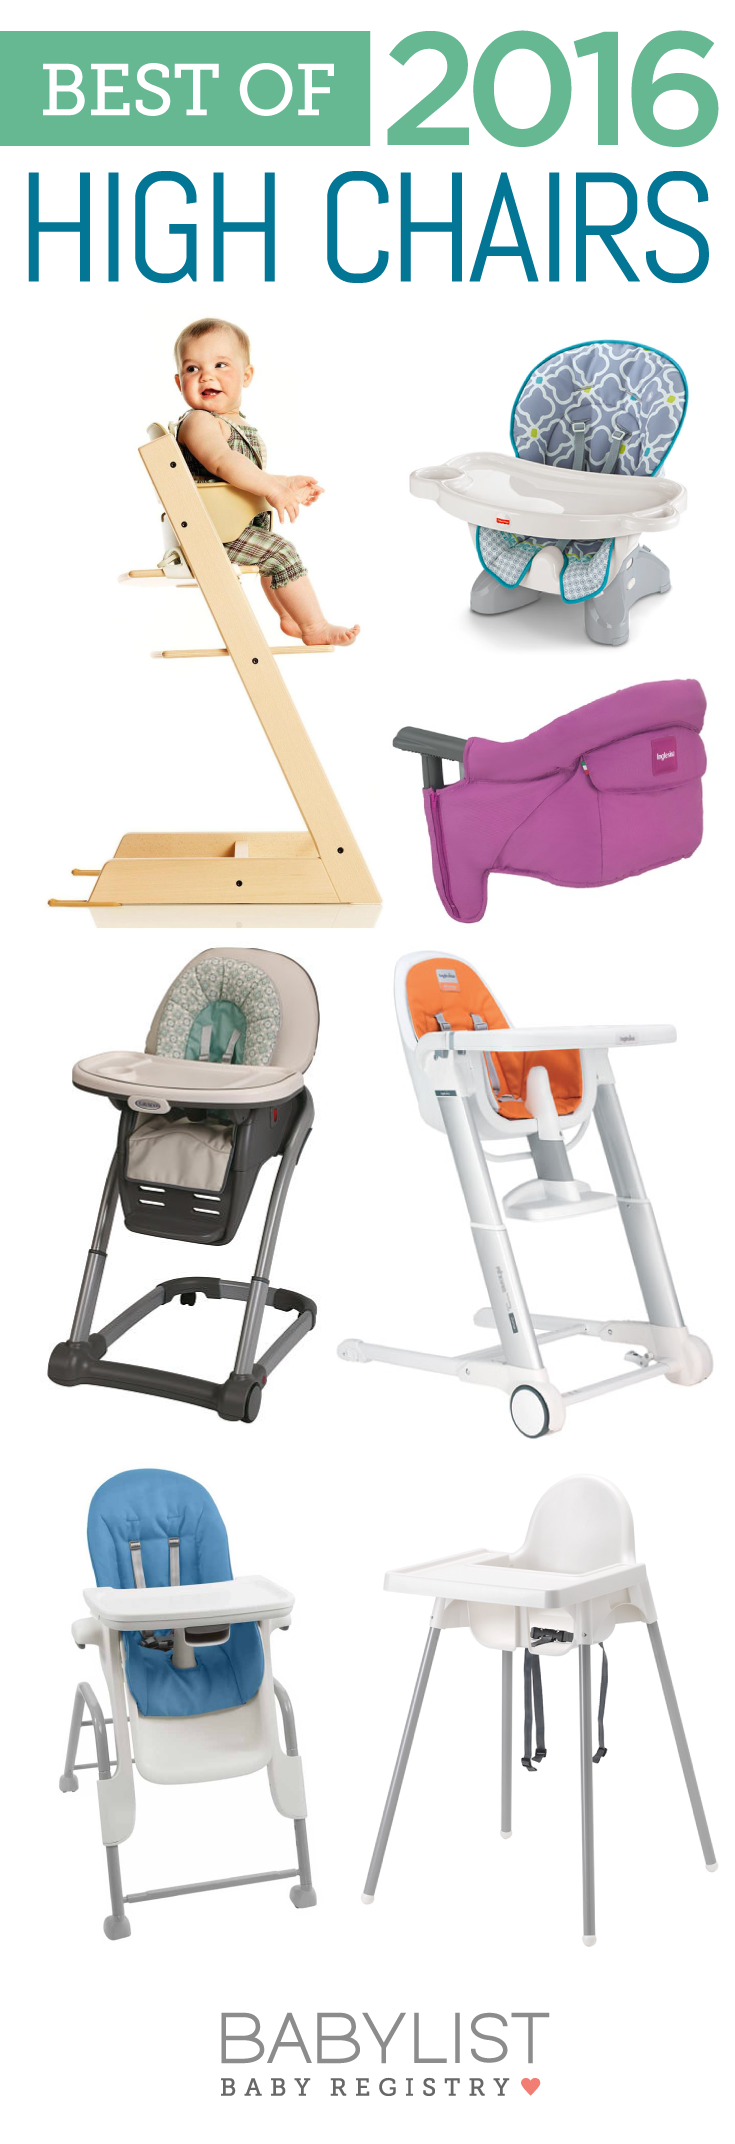 There's no one must-have high chair. Every family is different. Use this guide to figure out the best high chair for your family.